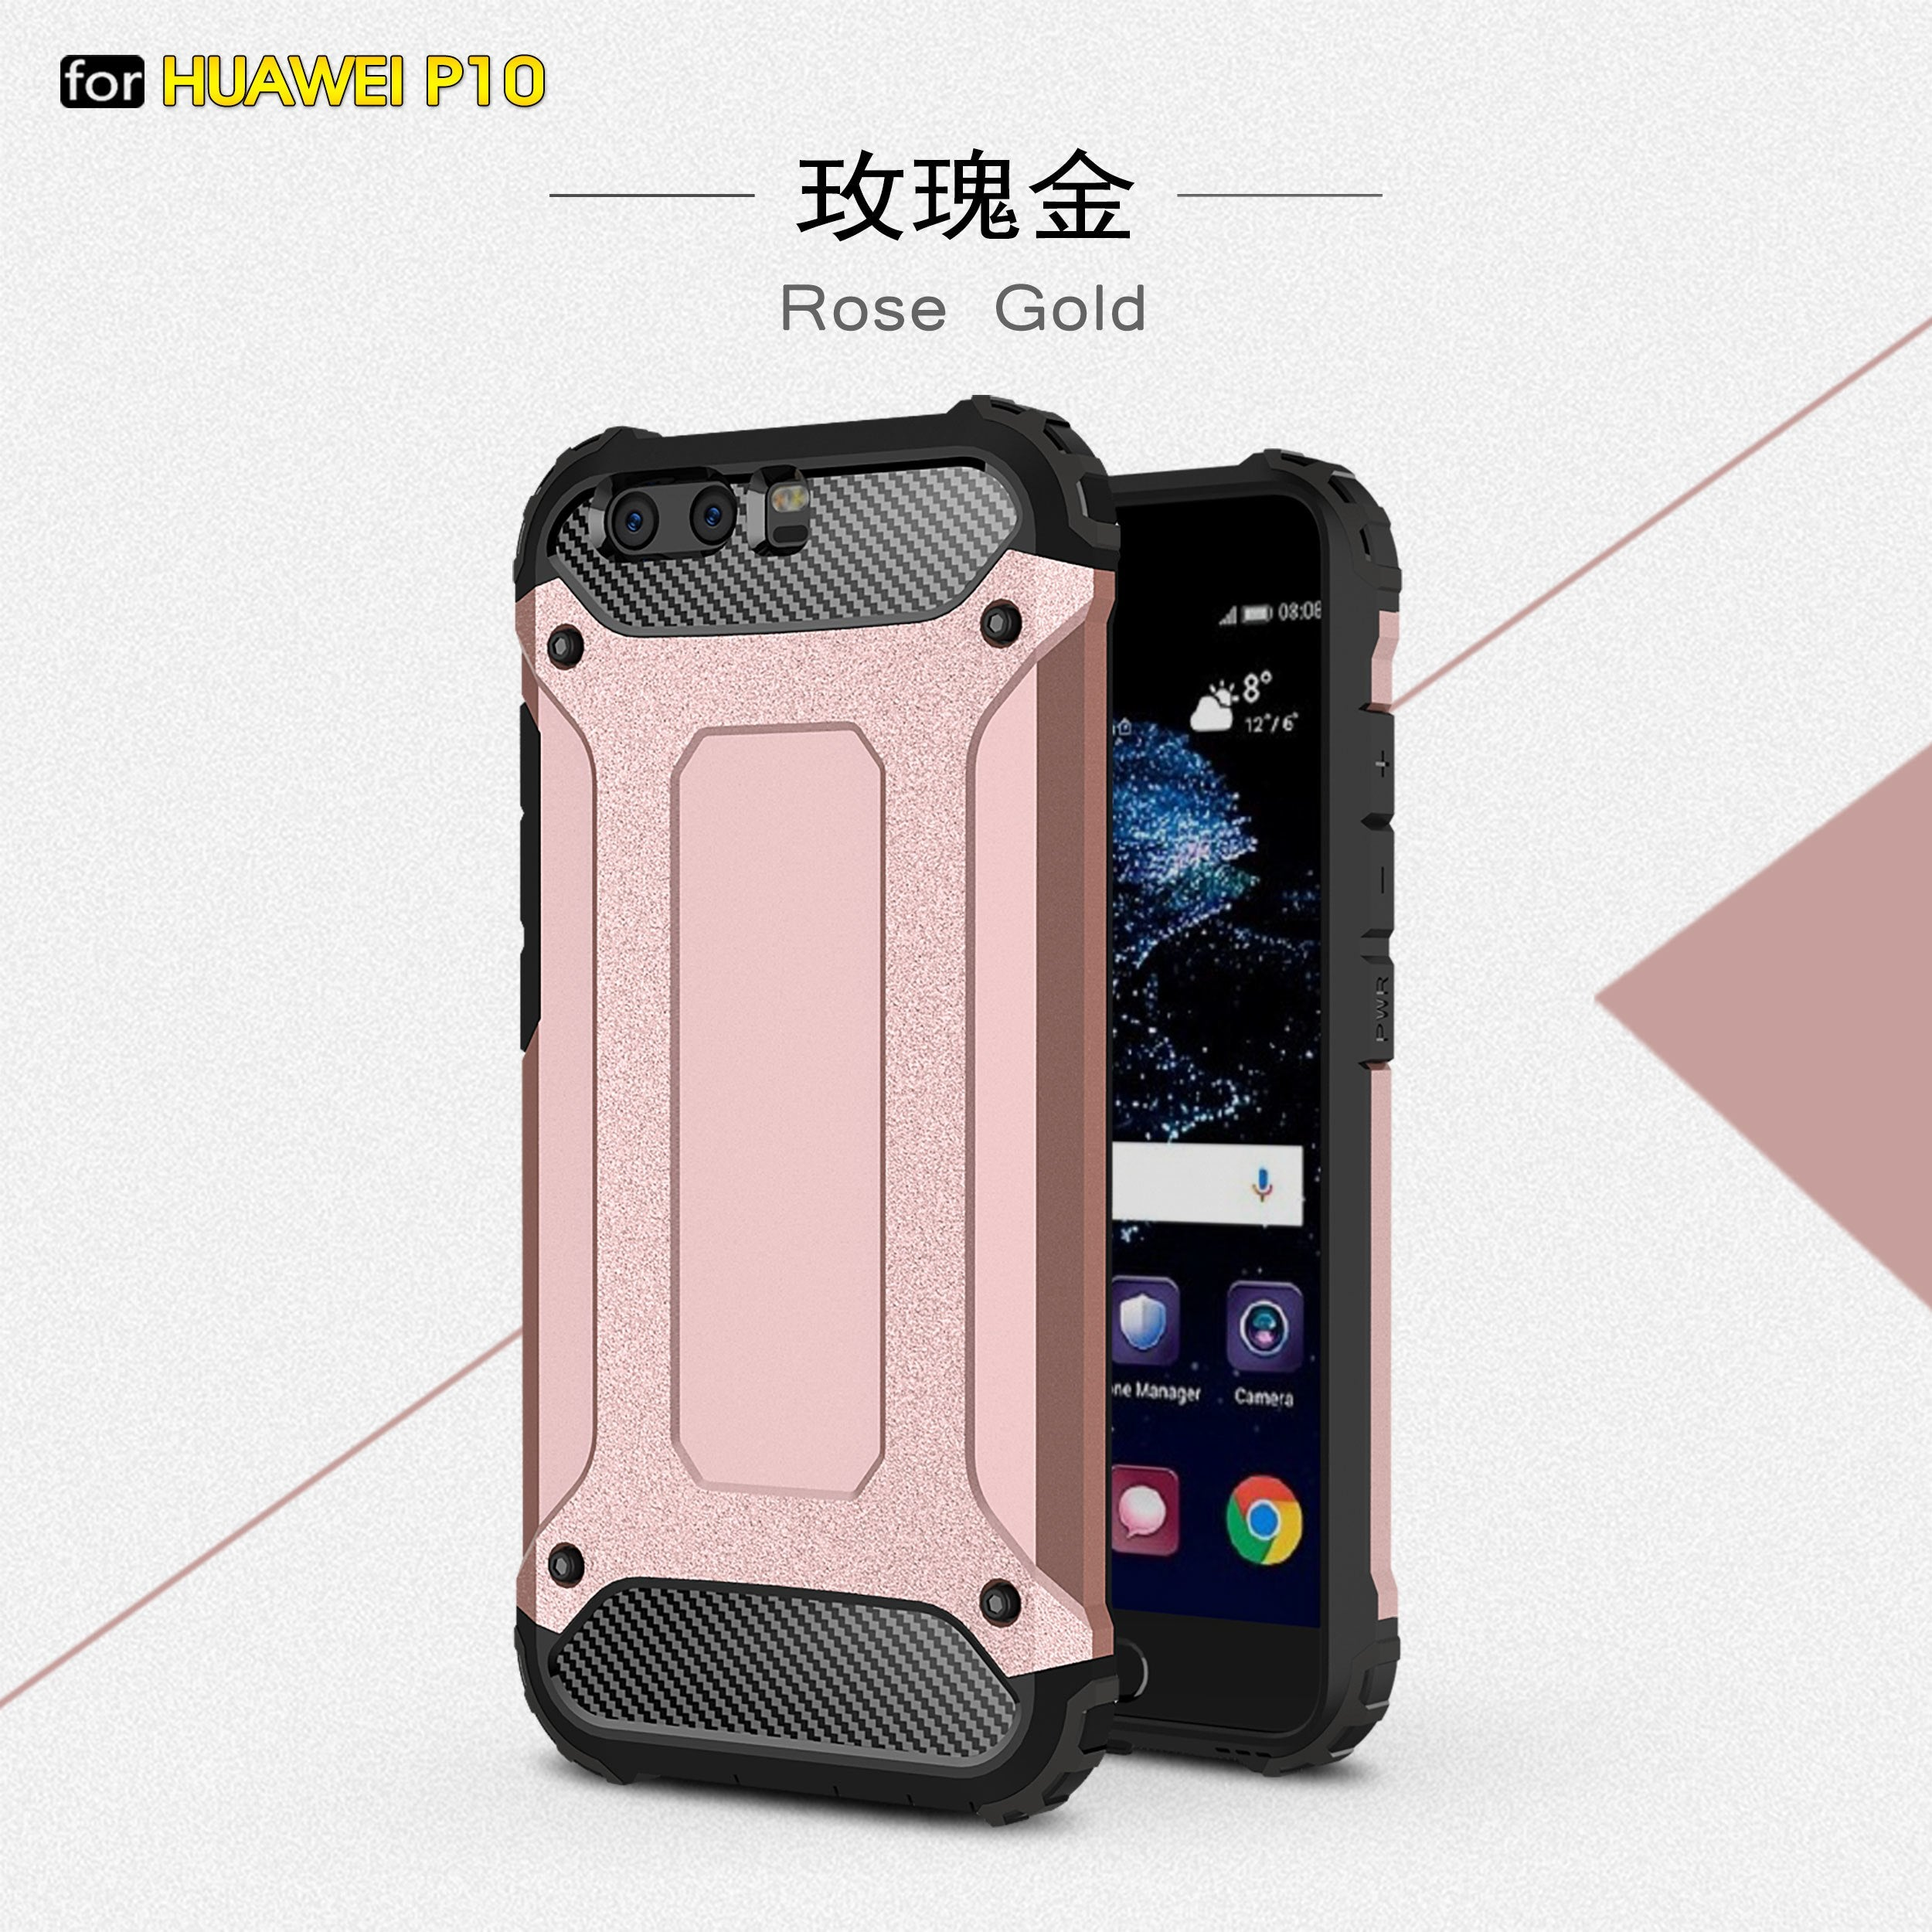 McCollum Mobile Phone Bags And Cases For Huawei P10 Case PC+TPU Army Amor  Cover Victoria 4G LTE Protective Skin Shell Housing